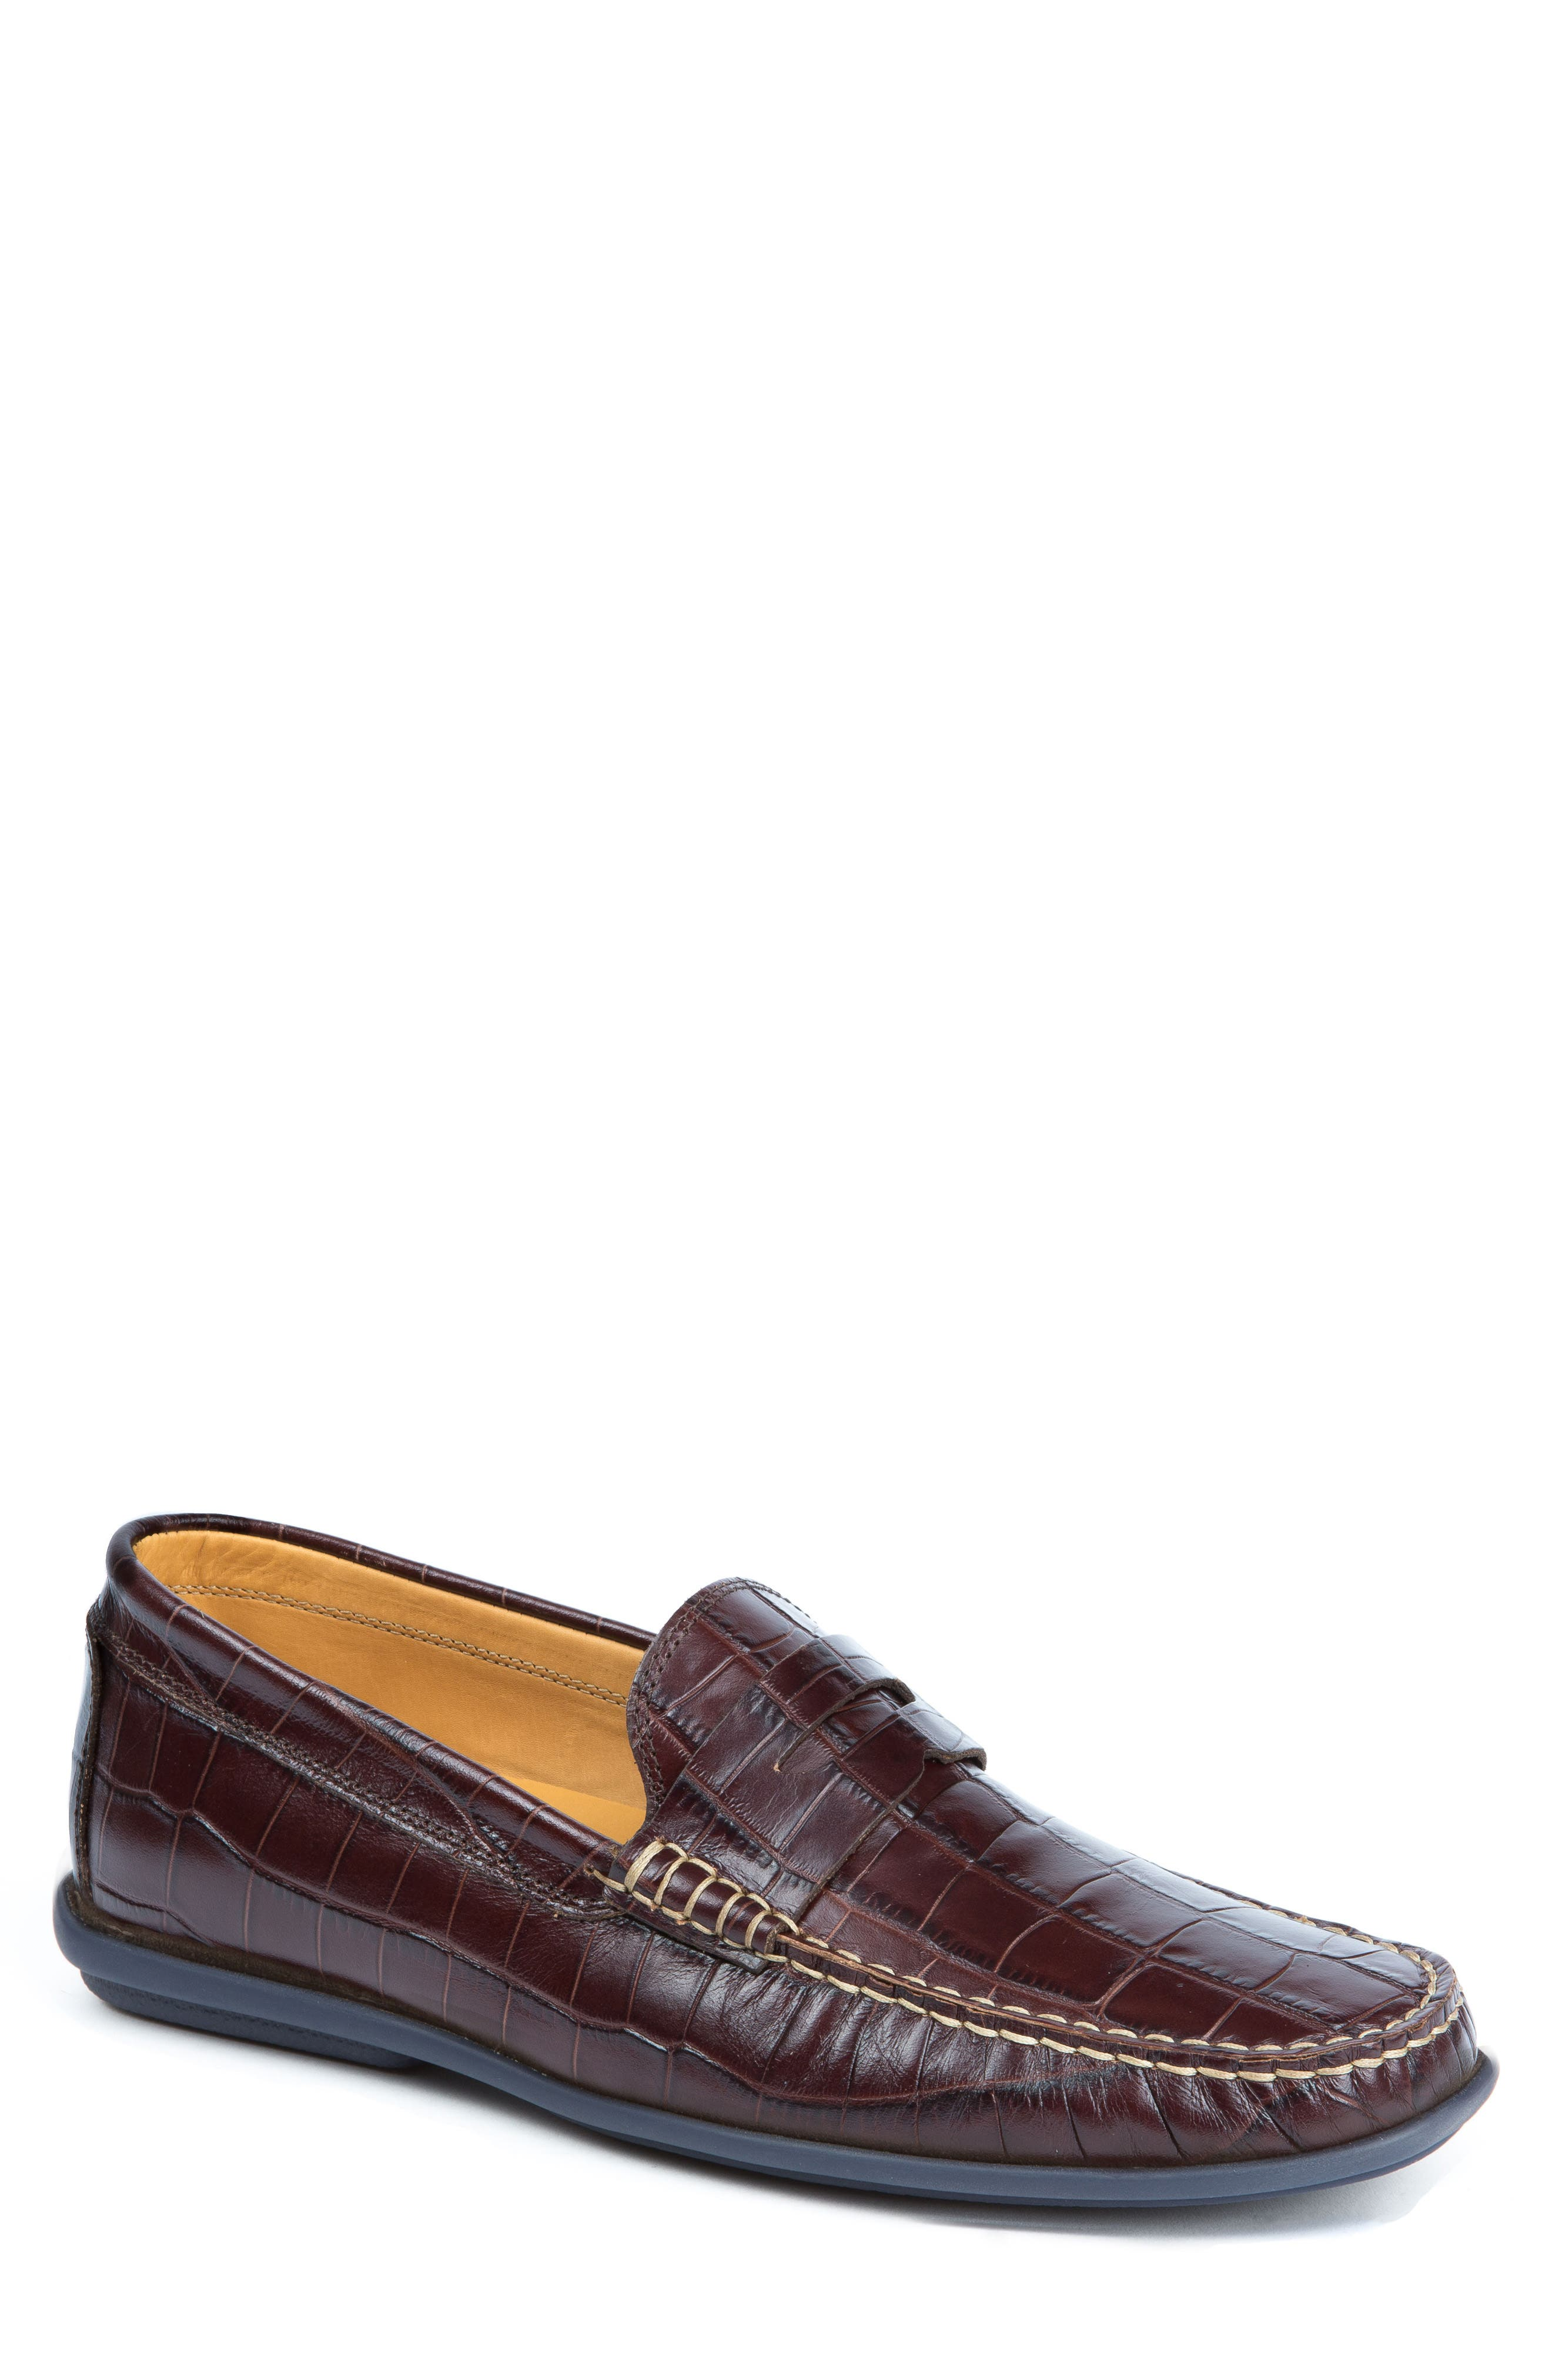 'Waverly' Leather Penny Loafer,                         Main,                         color, BROWN